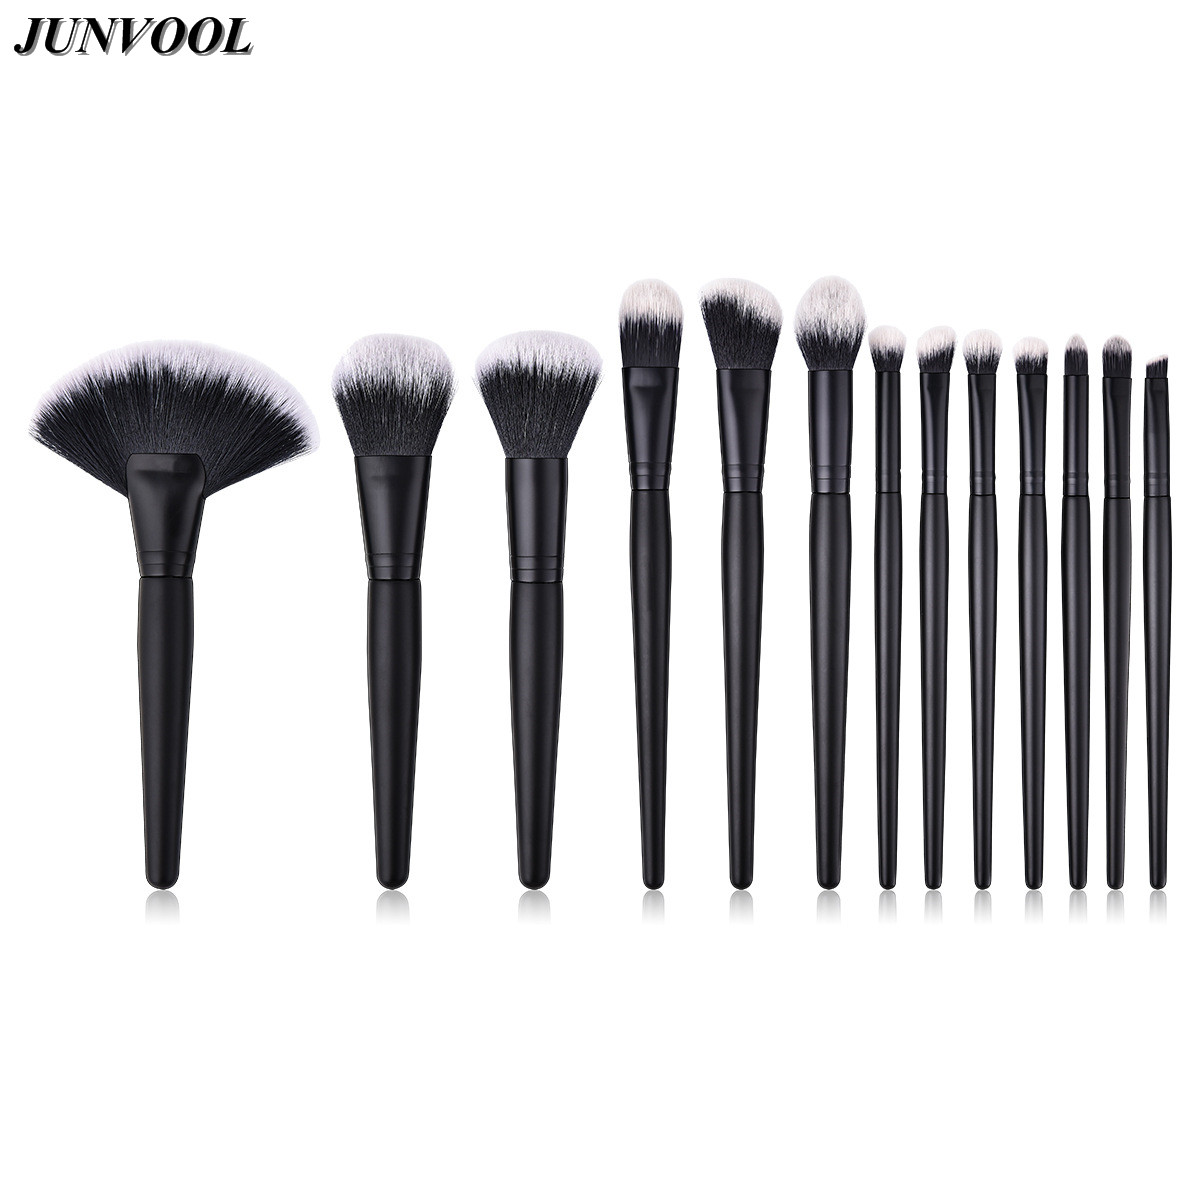 13pc Large Fan Black Makeup Brushes Set Eyeshadow Powder Foundation Concealer Blush Blending Make Up Brush Kit Flame Beauty Tool kuyomens black cap solid color baseball cap snapback caps casquette hats fitted casual gorras hip hop dad hats for men women